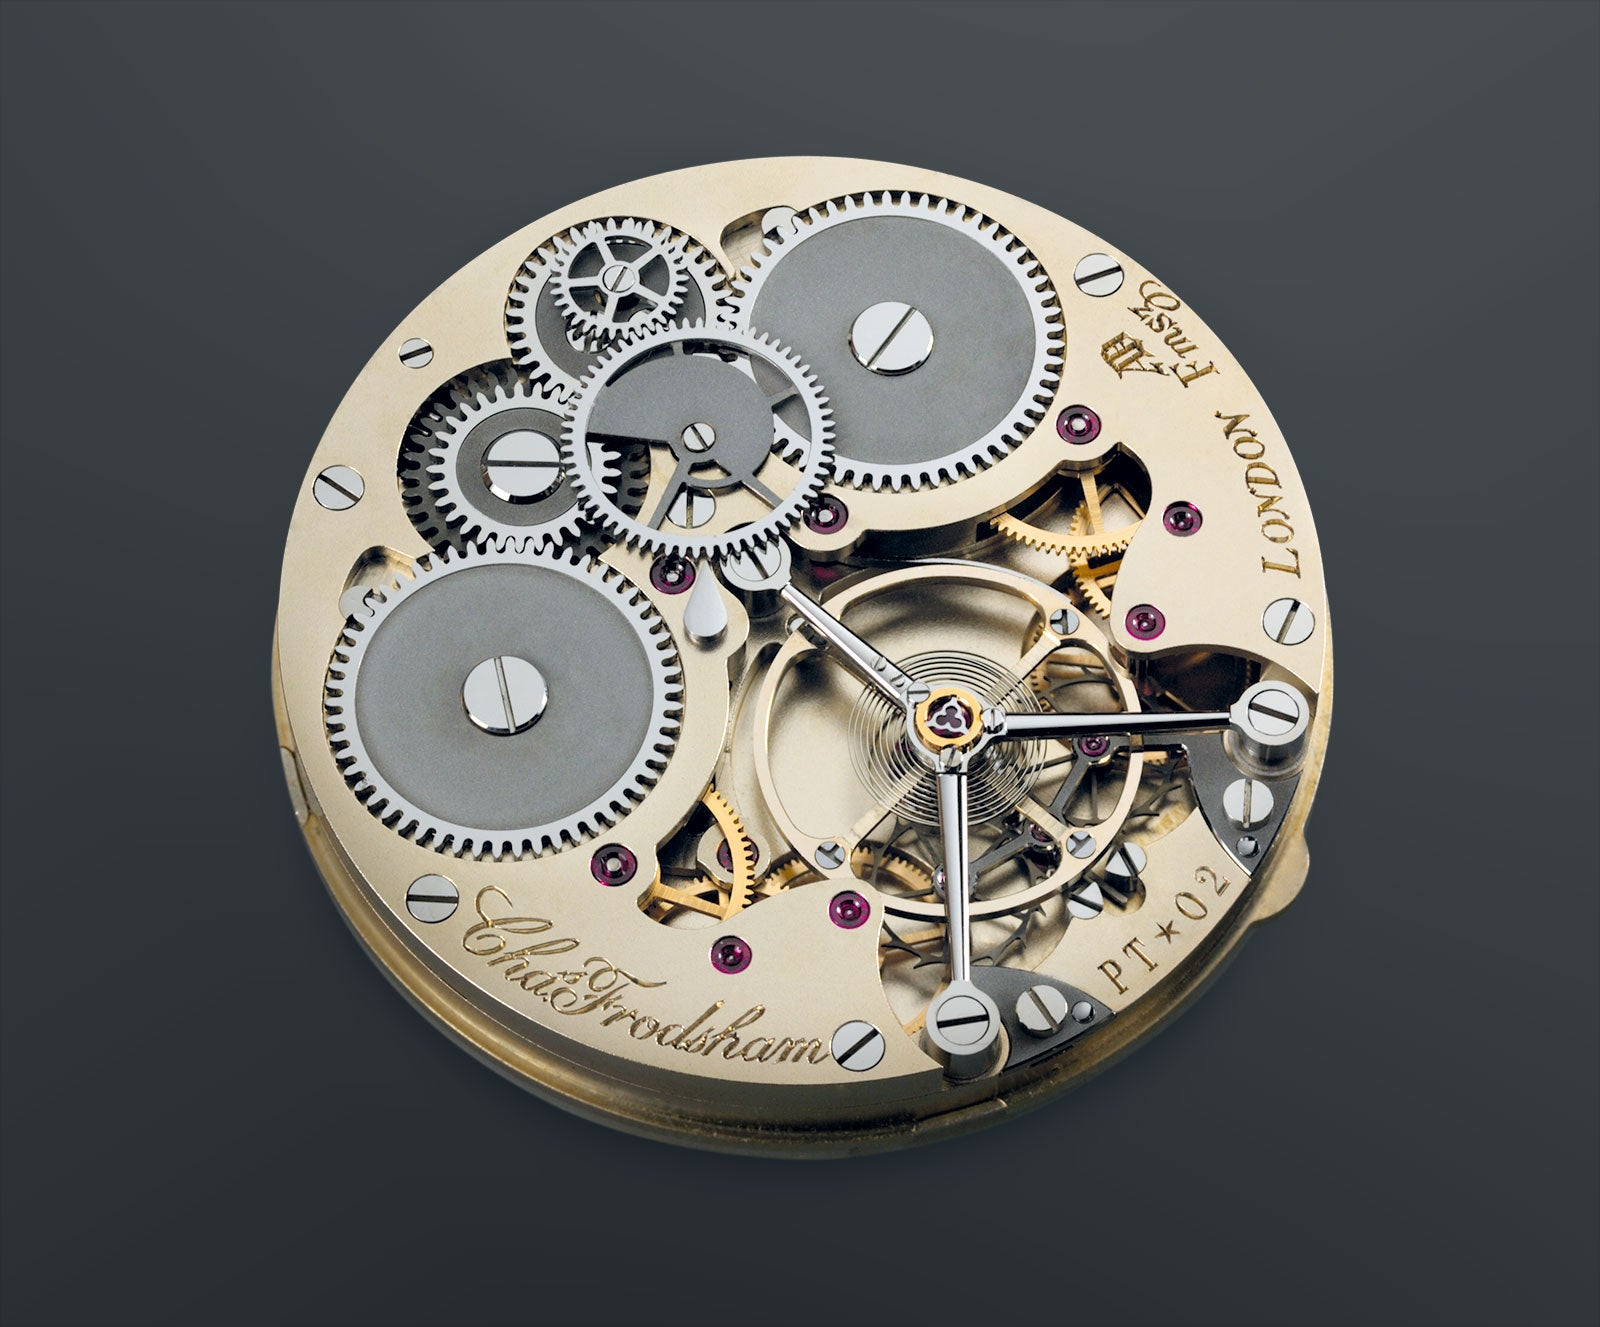 The movement of the Frodsham Double Impulse Chronometer for A Collected Man London